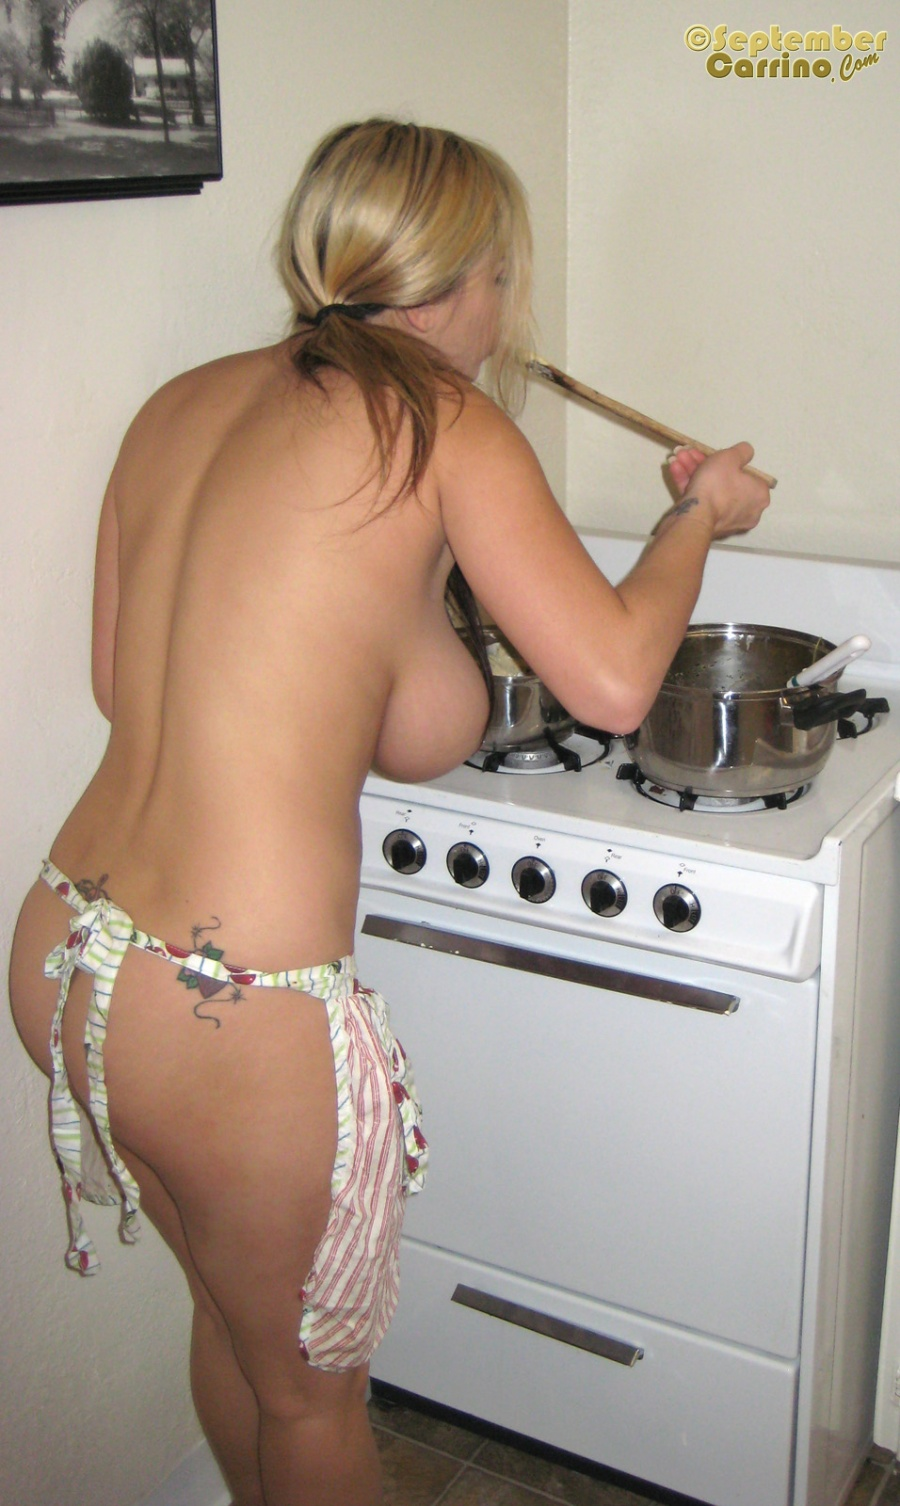 Naked Women Cooking Nude